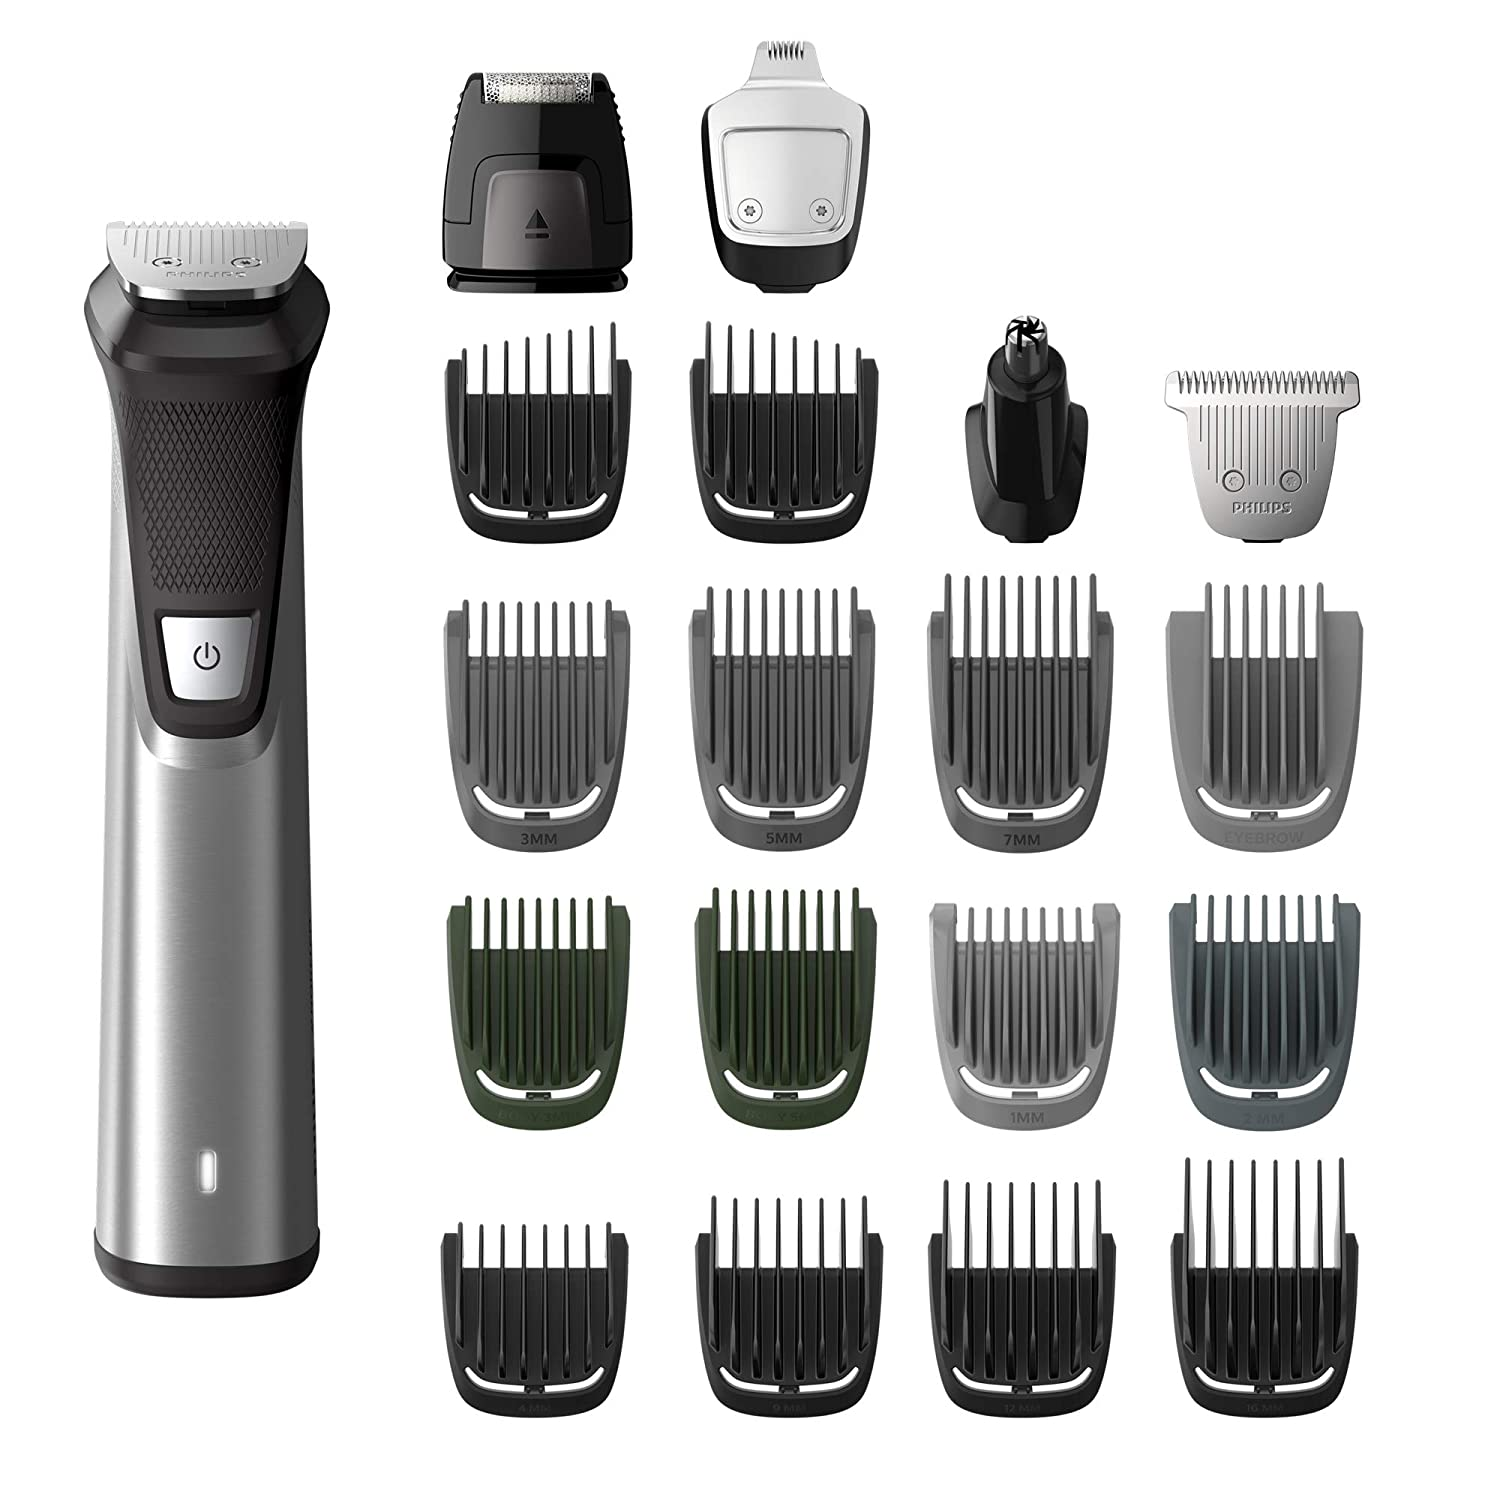 Philips NorelcoMG7750/49 Multigroom Series 7000, Men's Grooming Kit with Trimmer for Beard, Head, Body, and Face - No Blade Oil Needed